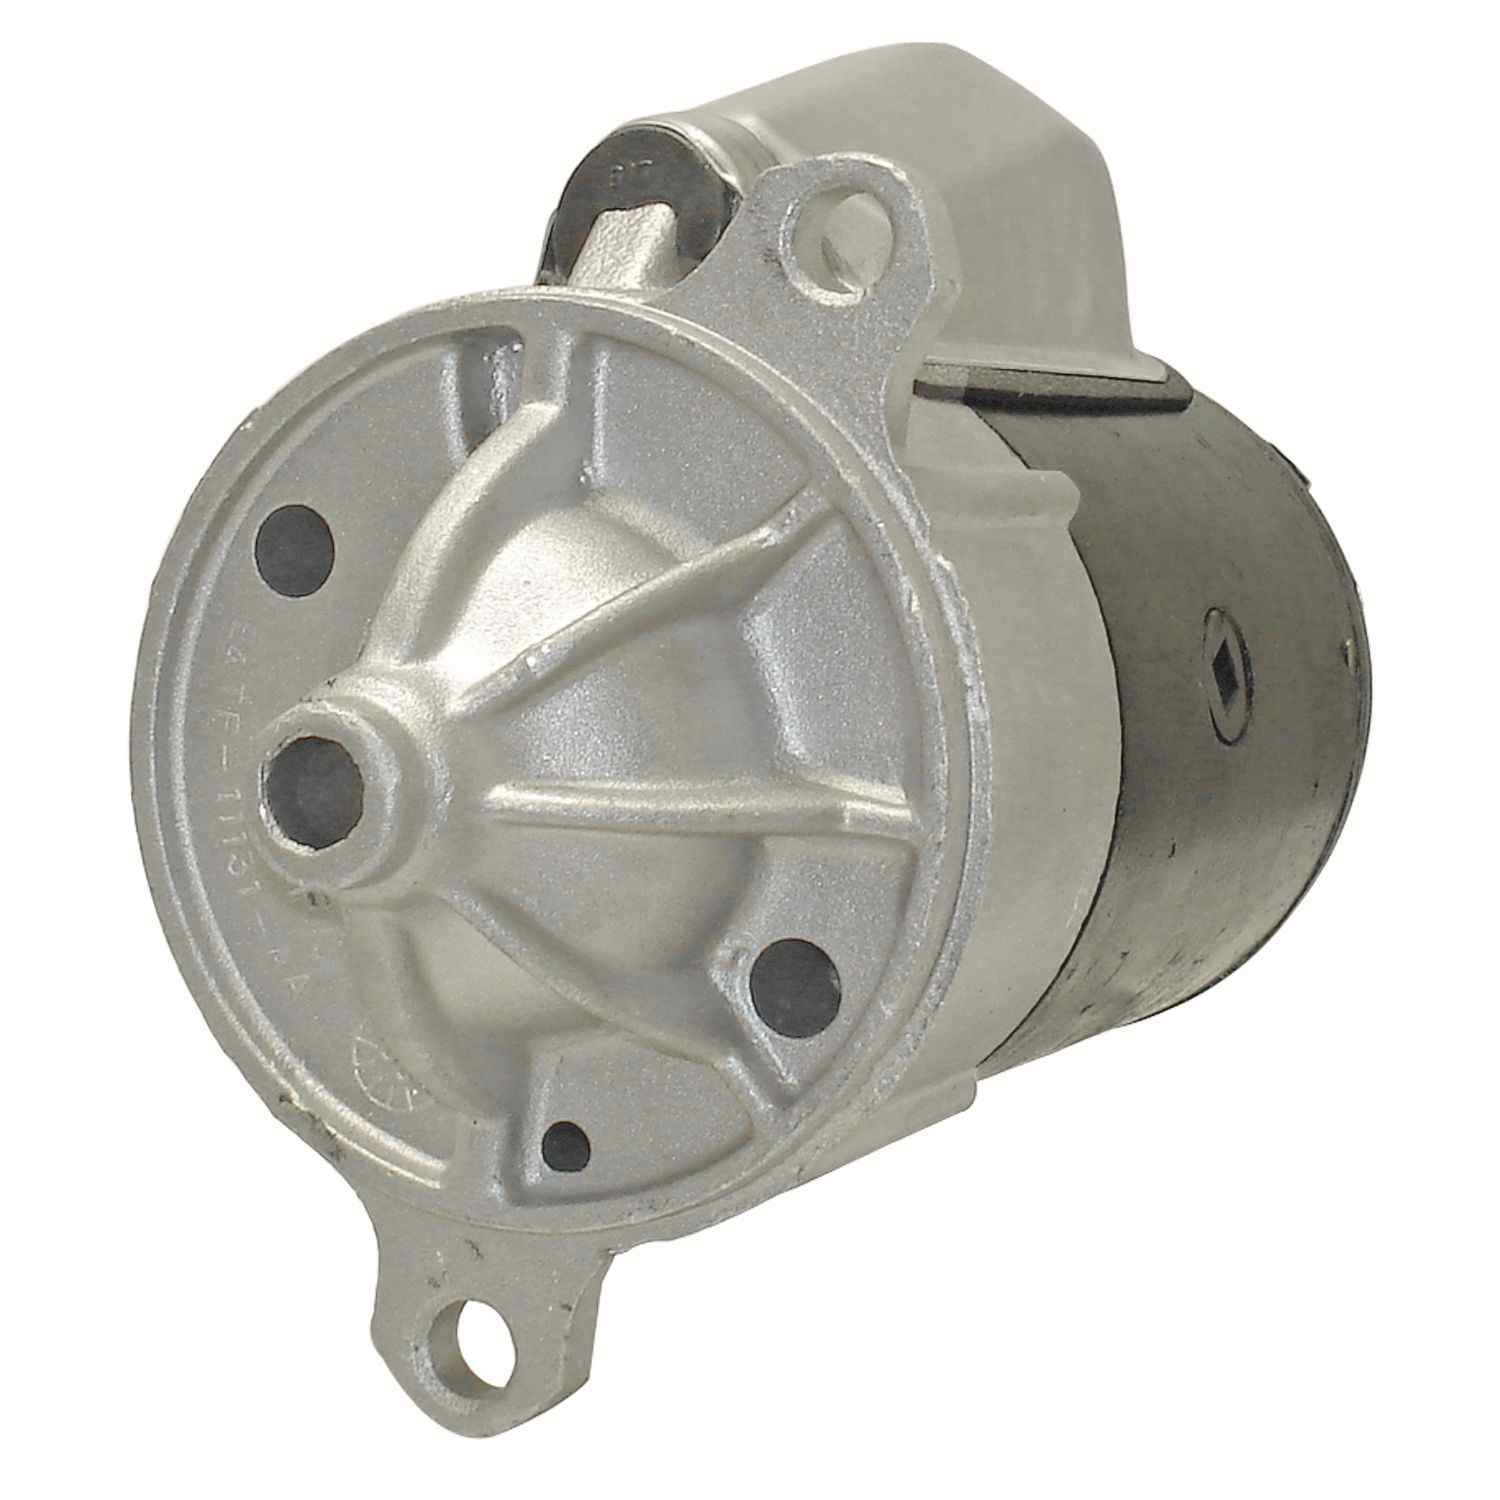 ACDELCO GOLD/PROFESSIONAL - Reman Starter Motor - DCC 336-1033